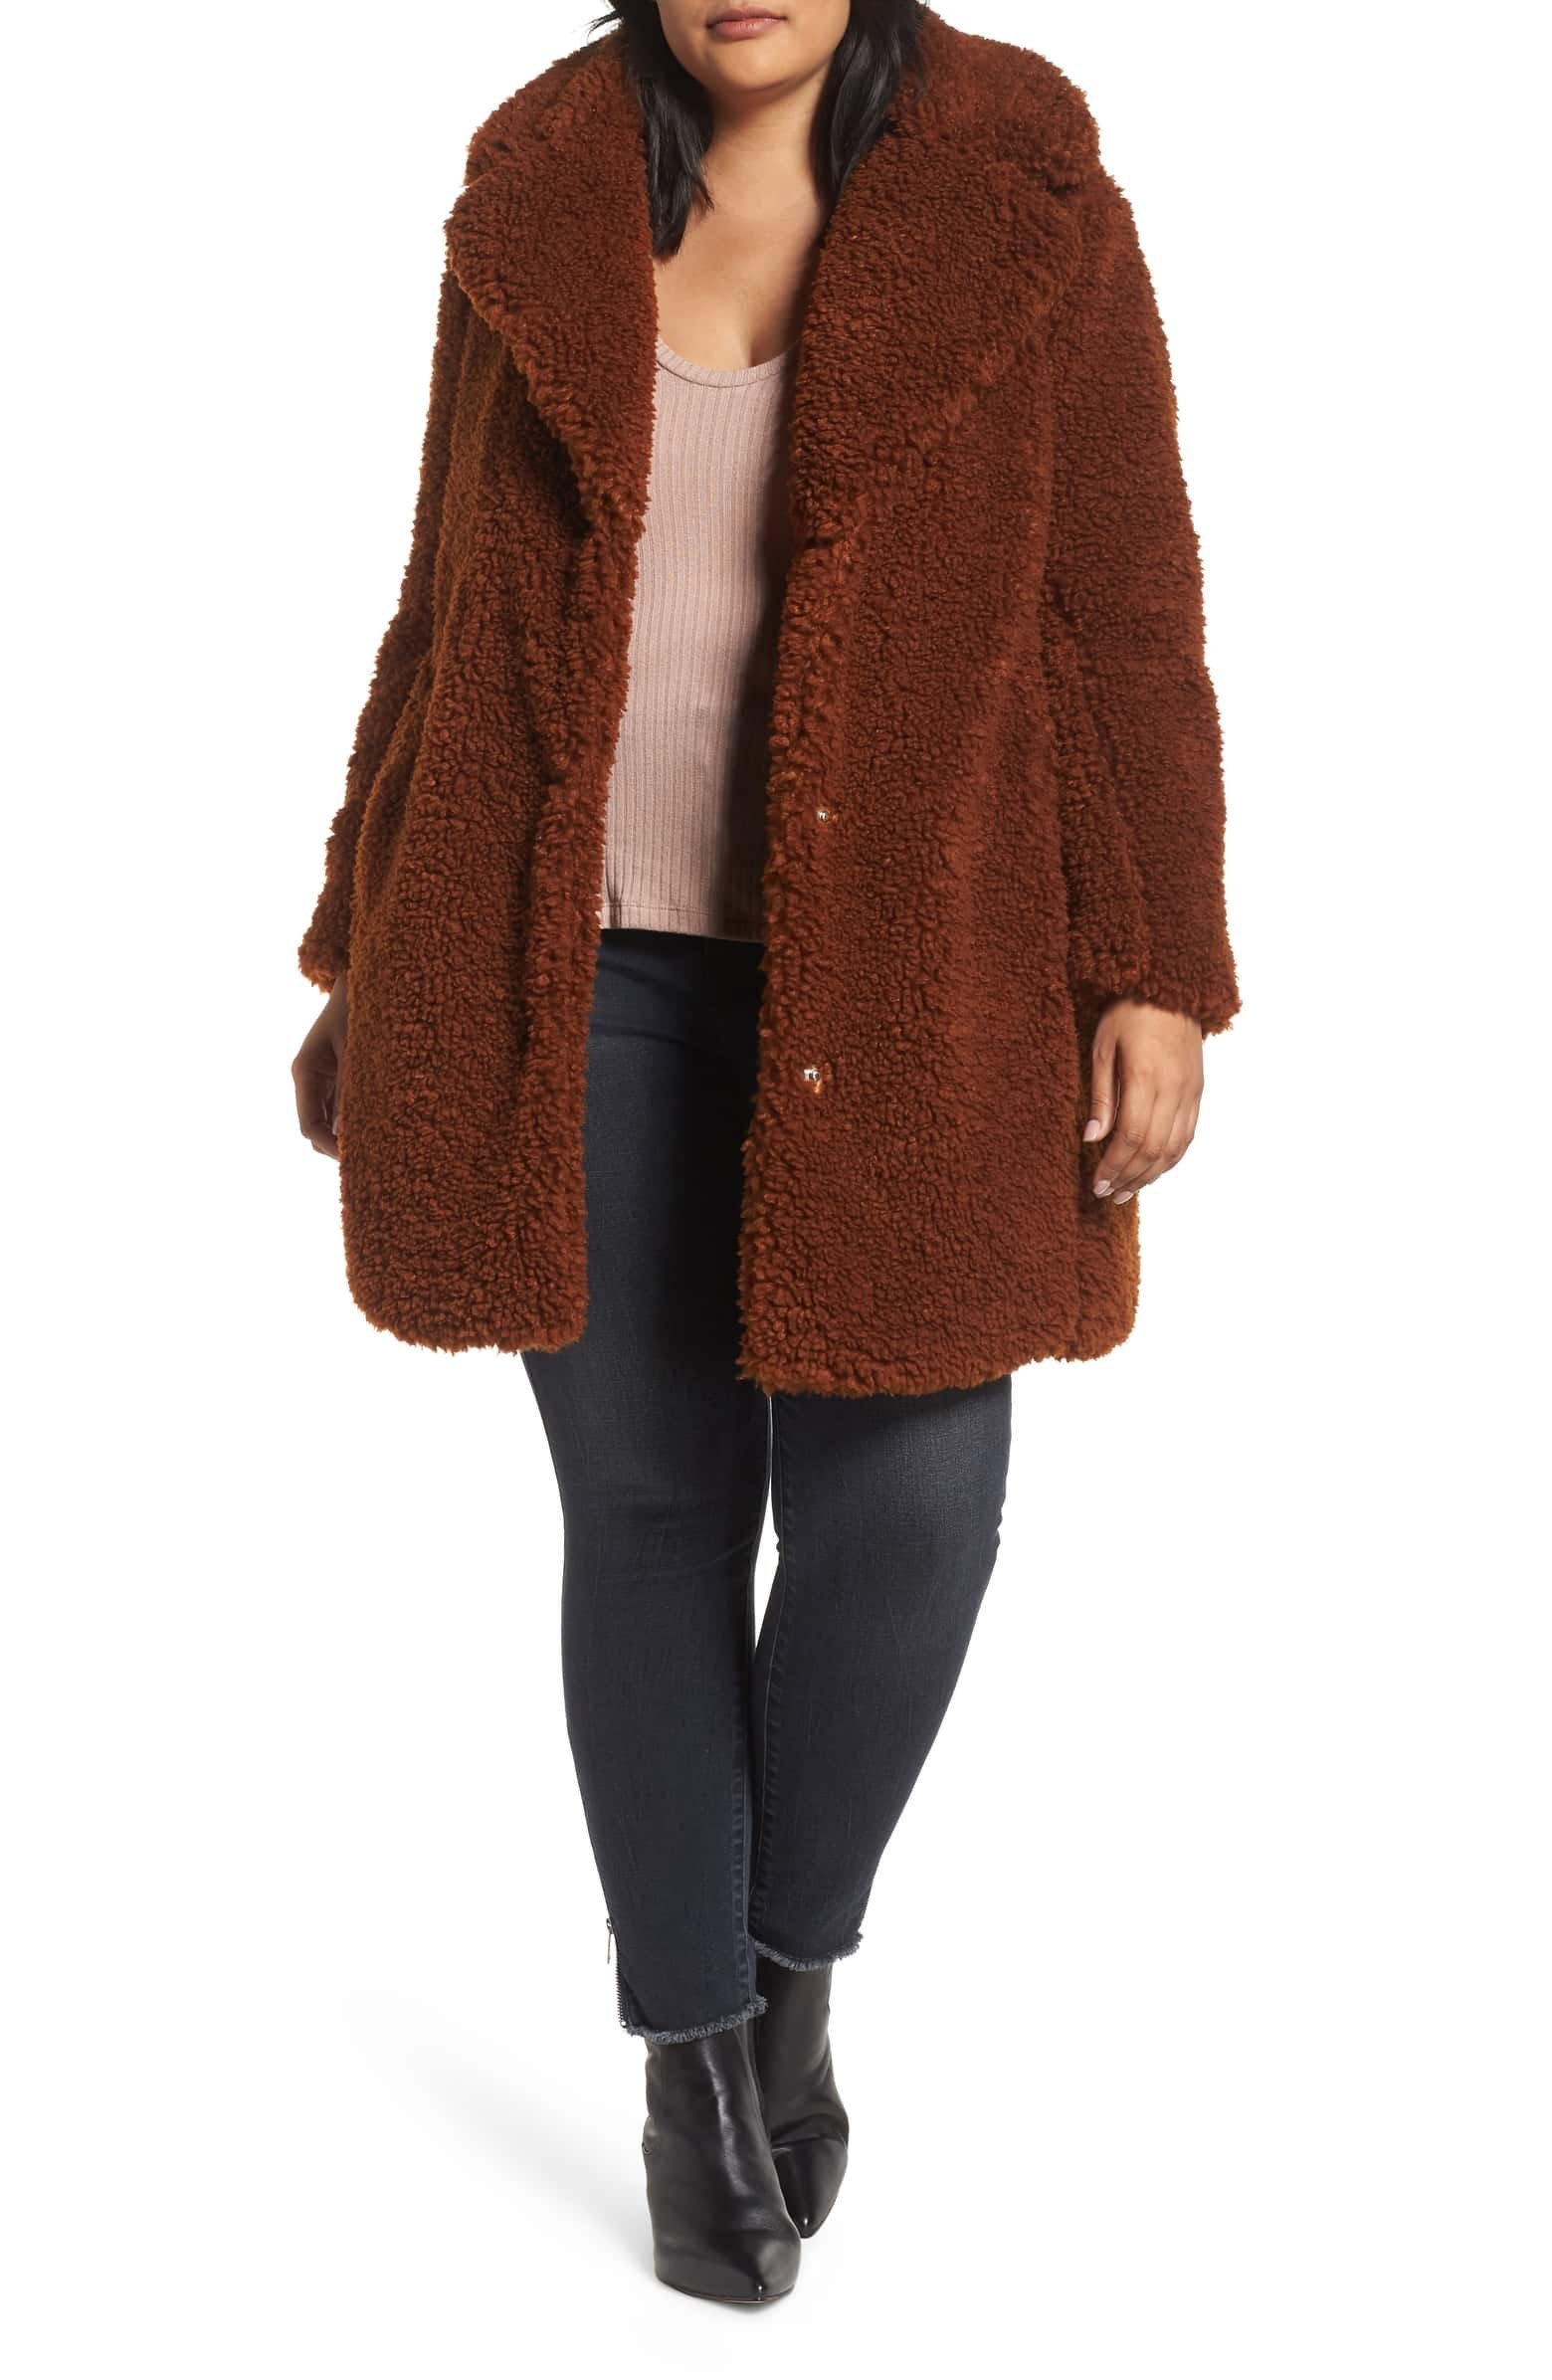 "Promising review: ""What a great coat. It's reversible and comfortable. The first day out I got lots of compliments. It runs large so size down. It's also very warm and great for the colder Maryland winters. So glad I found this coat."" —TamsmdGet it from Nordstrom for $109.90 (originally $168.00, available 1X–3X and two)."